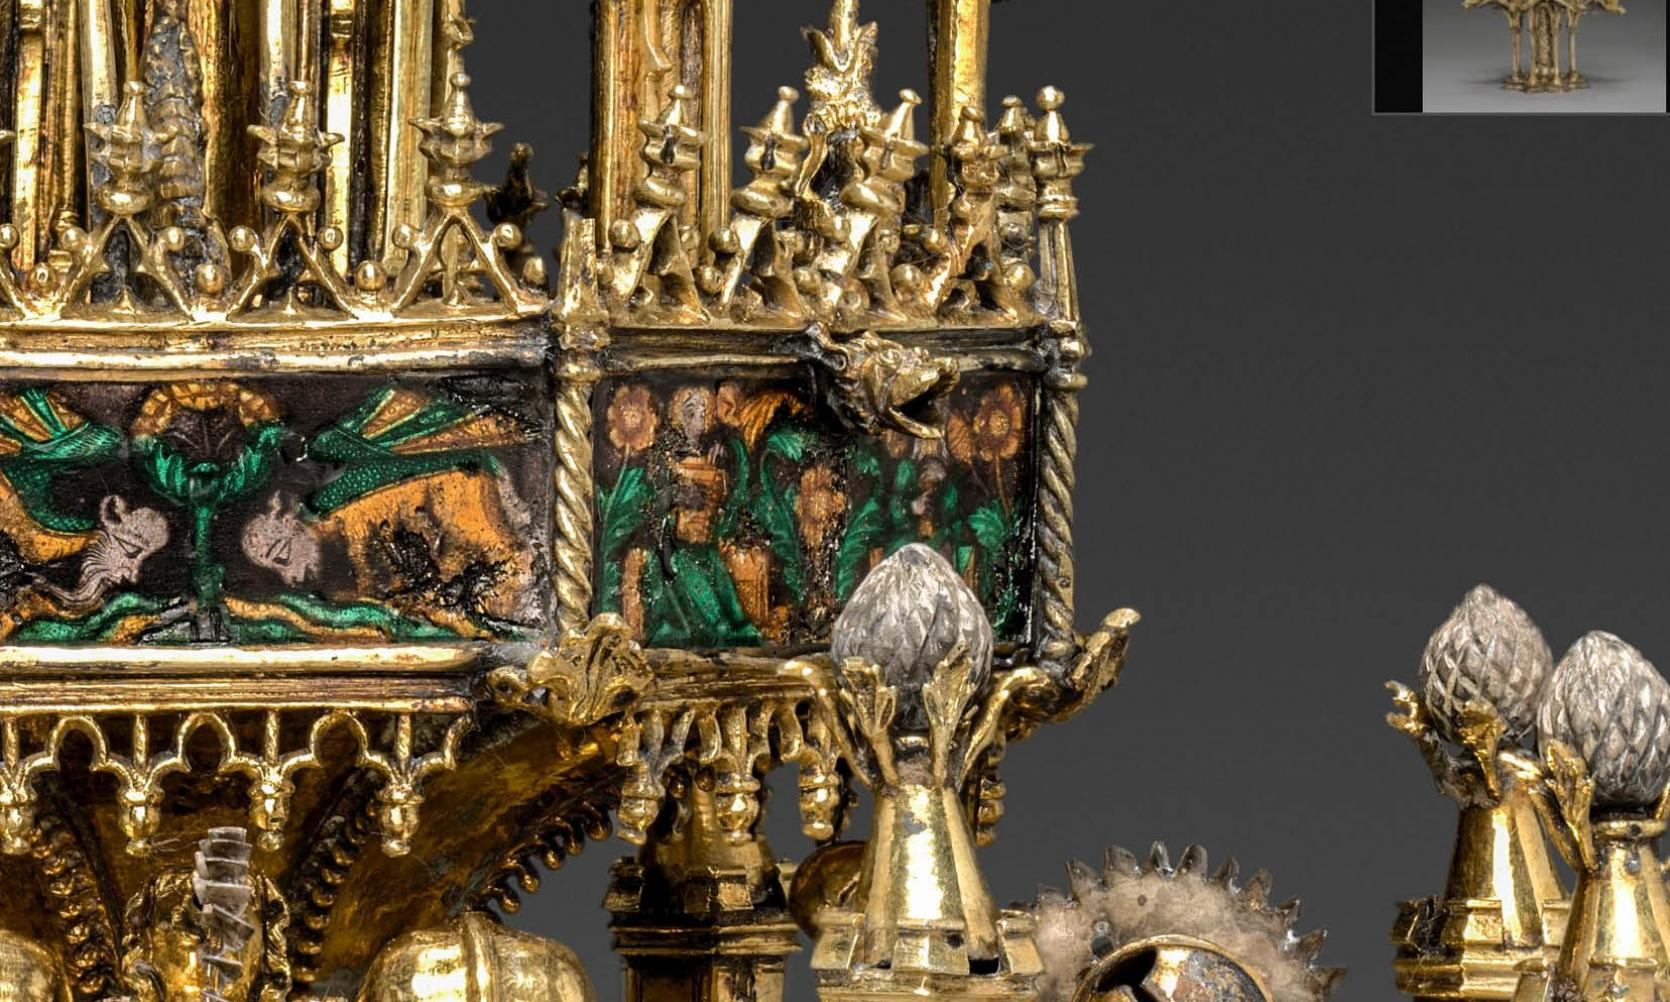 detail of an ornate gold medieval table fountain